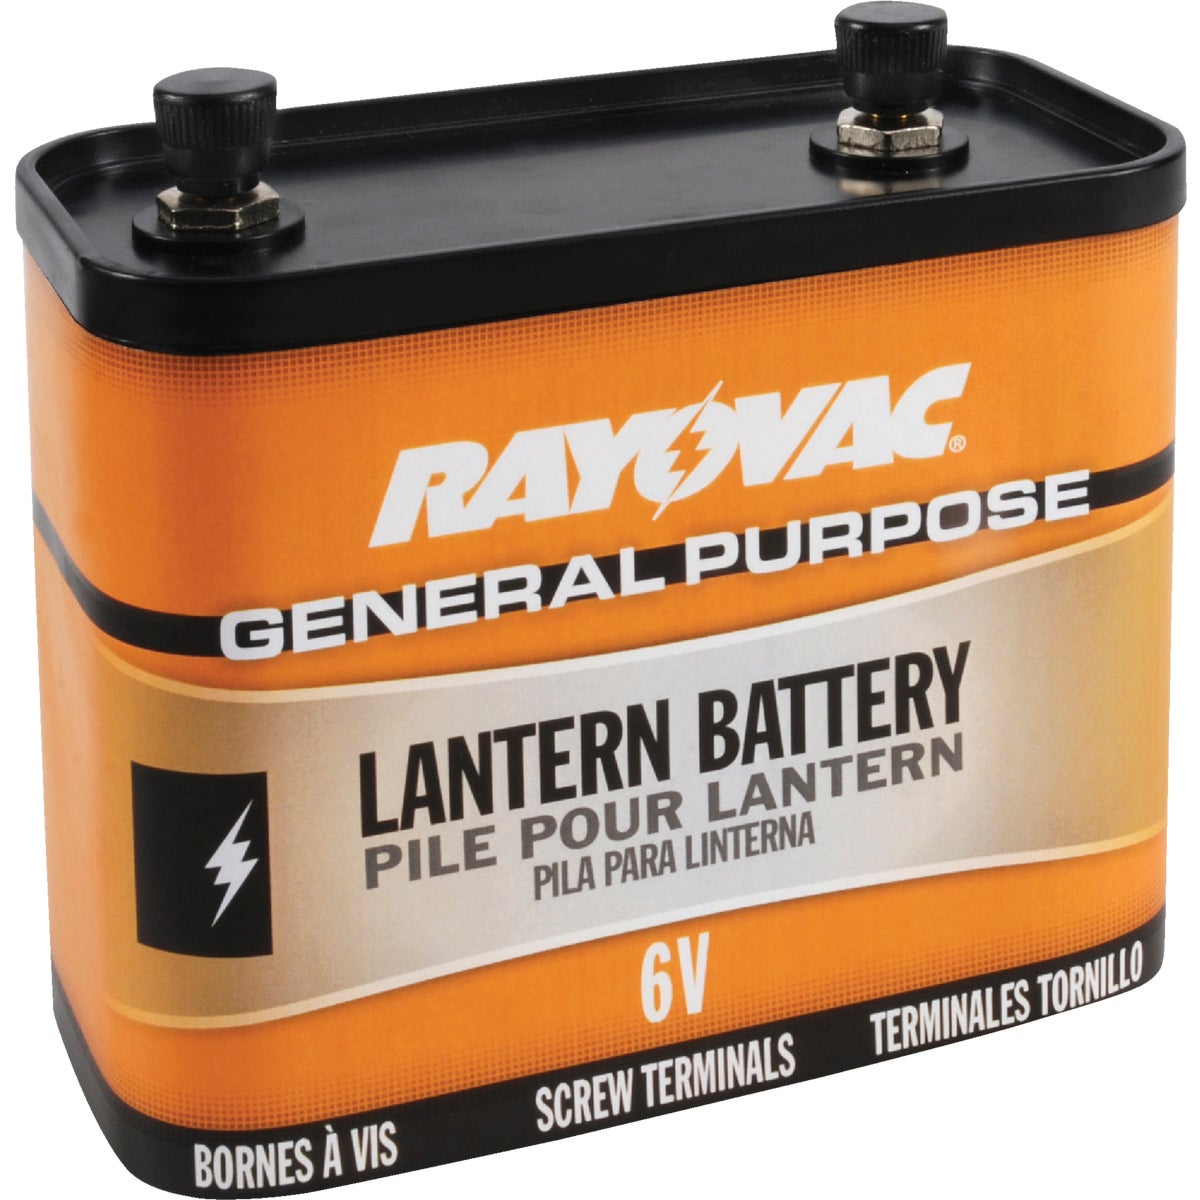 6V LANTERN BATTERY - 918 by Ray O Vac